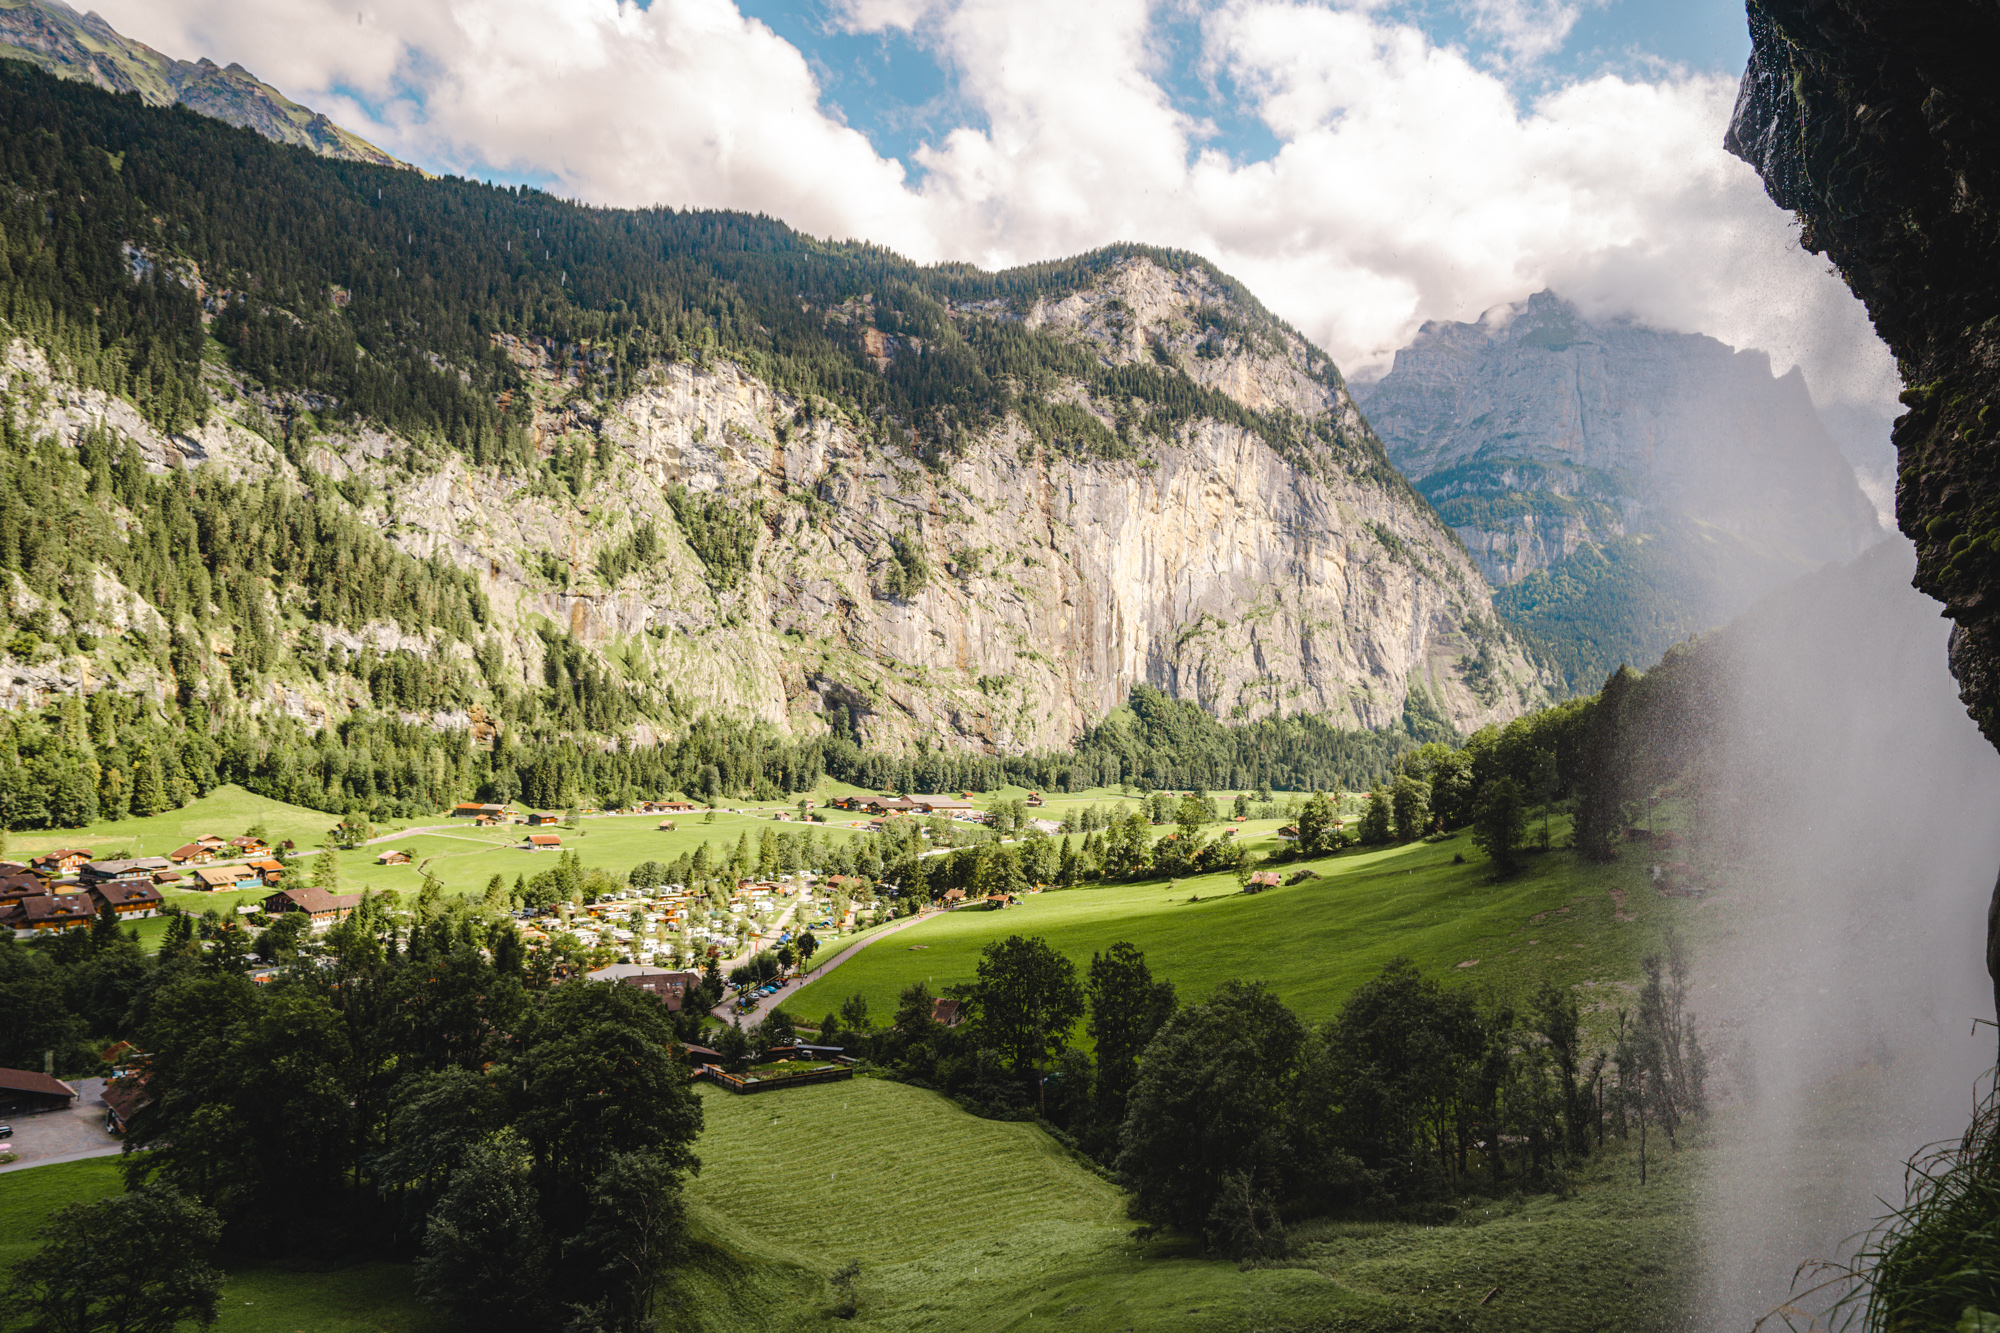 Lauterbrunnen valley views from Staubbach Falls.